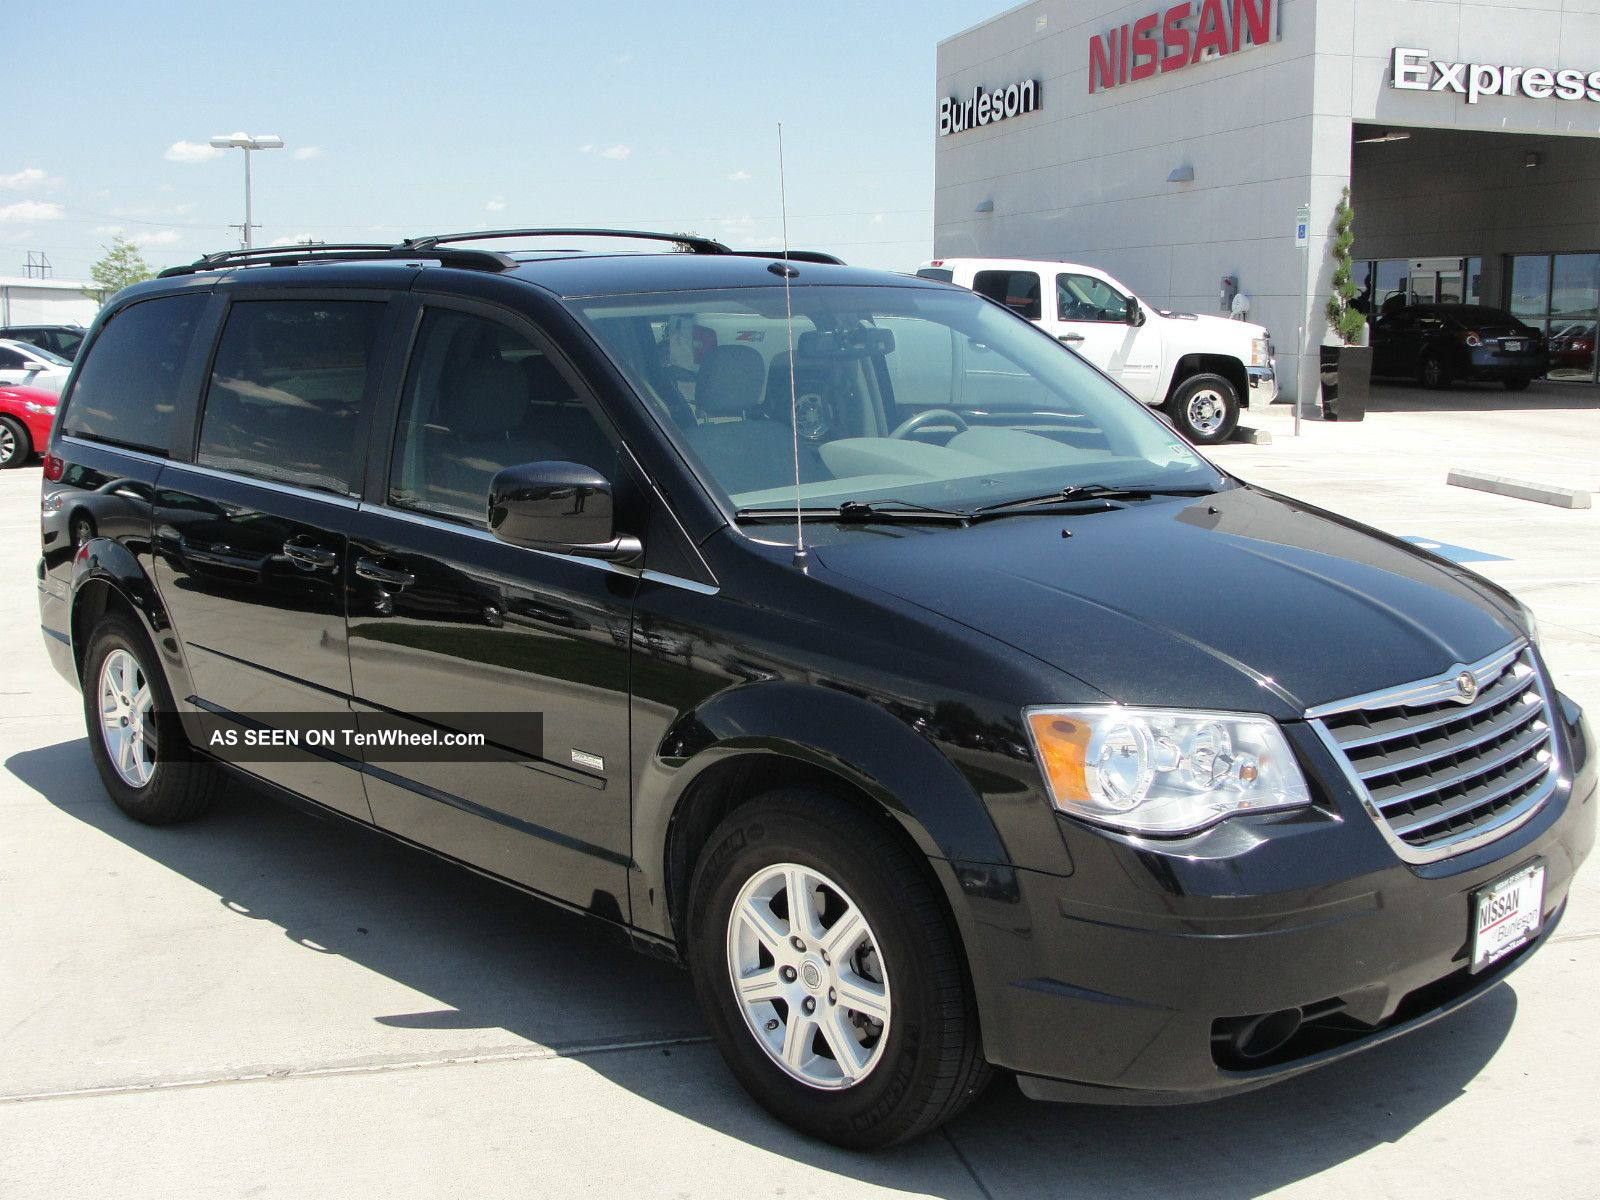 2008 Chrysler Town & Country Dvd Minivan